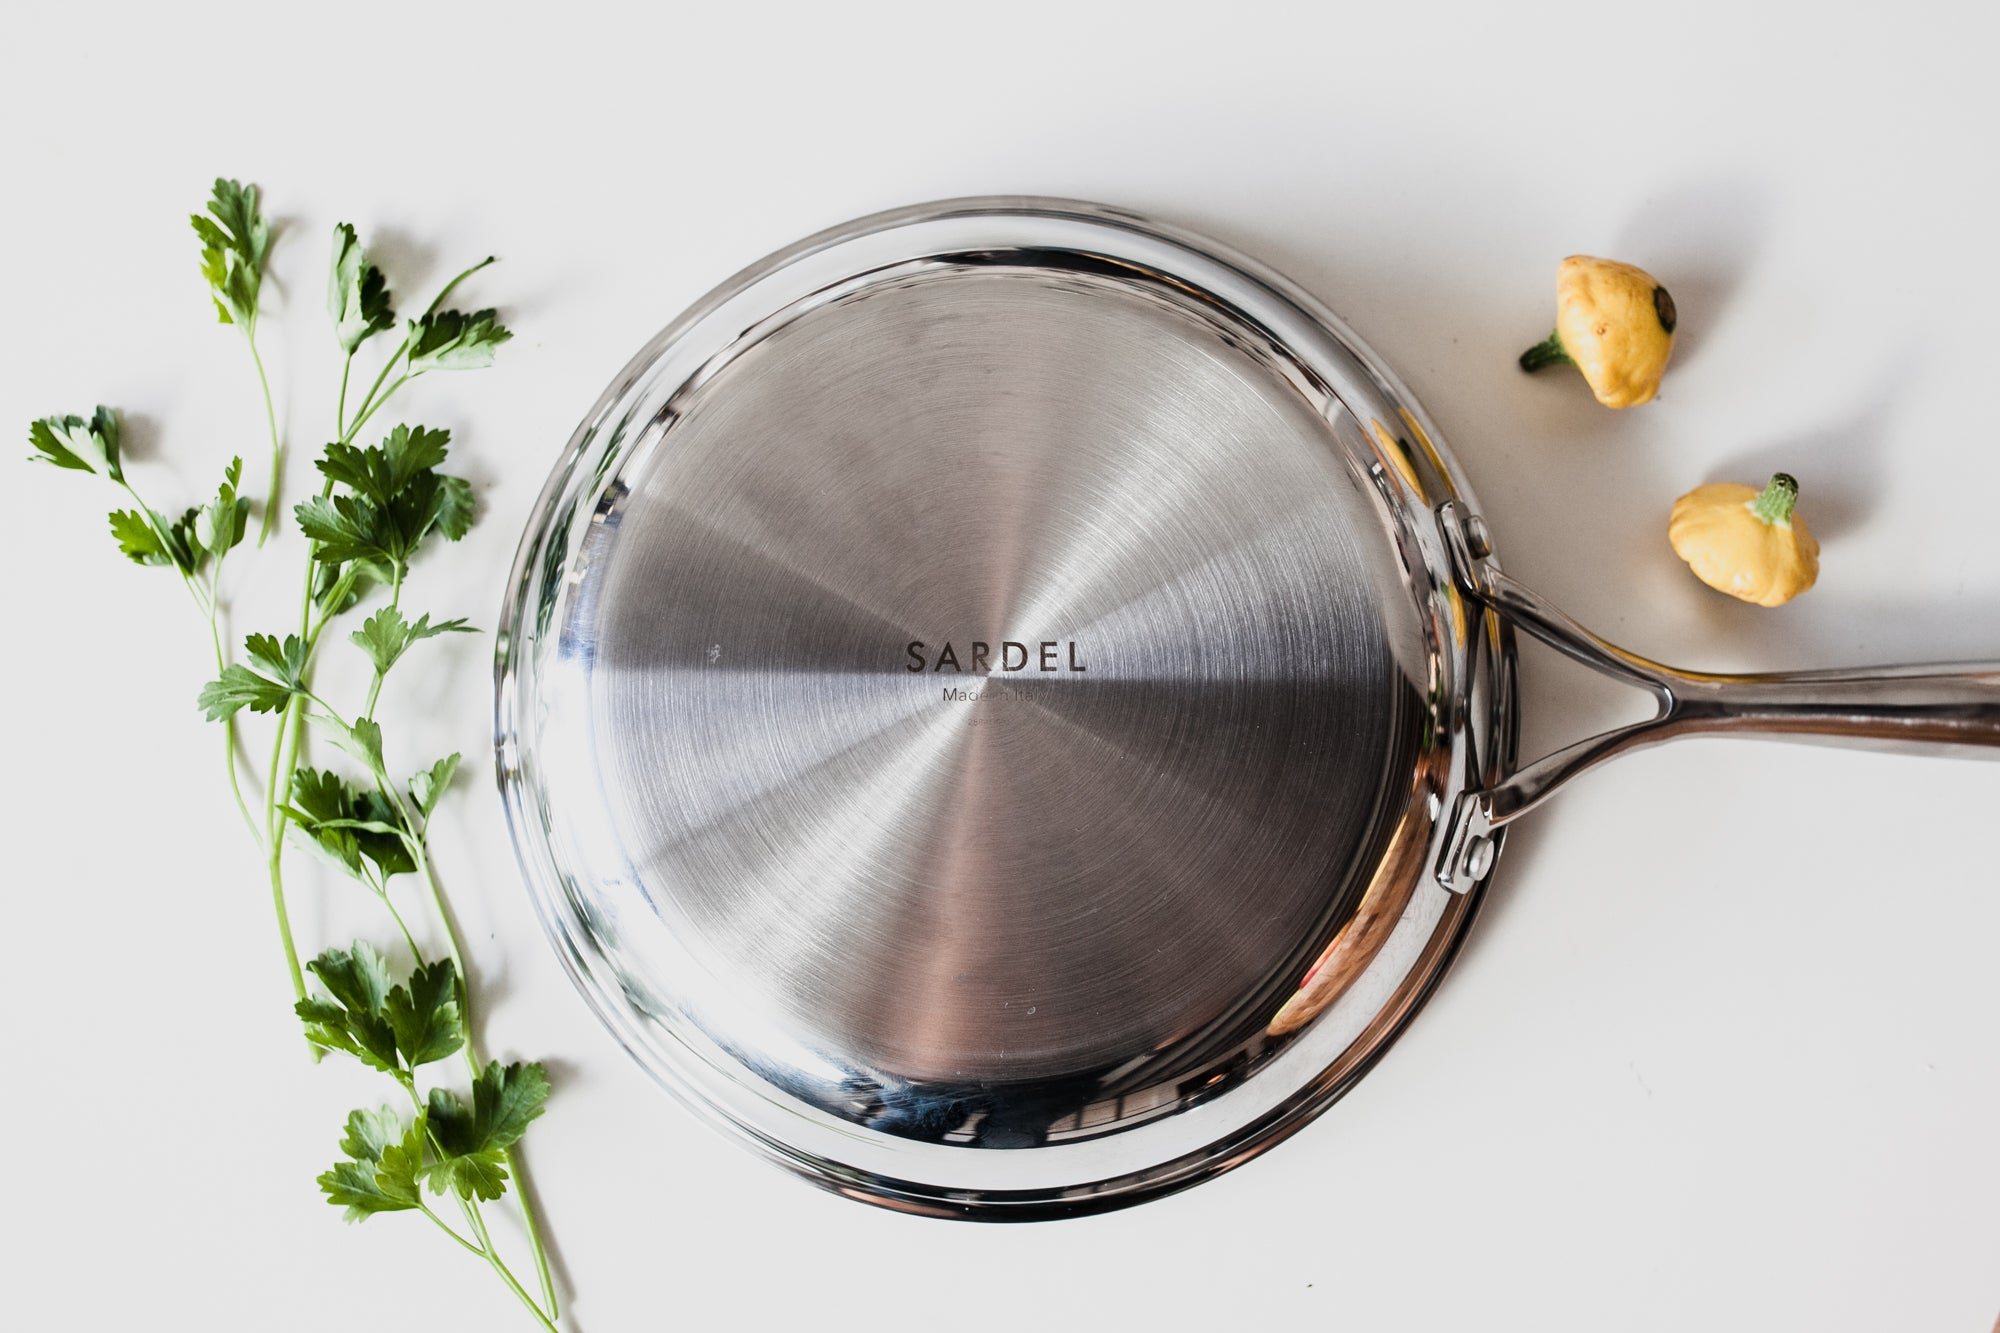 How To Care For Your Stainless Steel Cookware